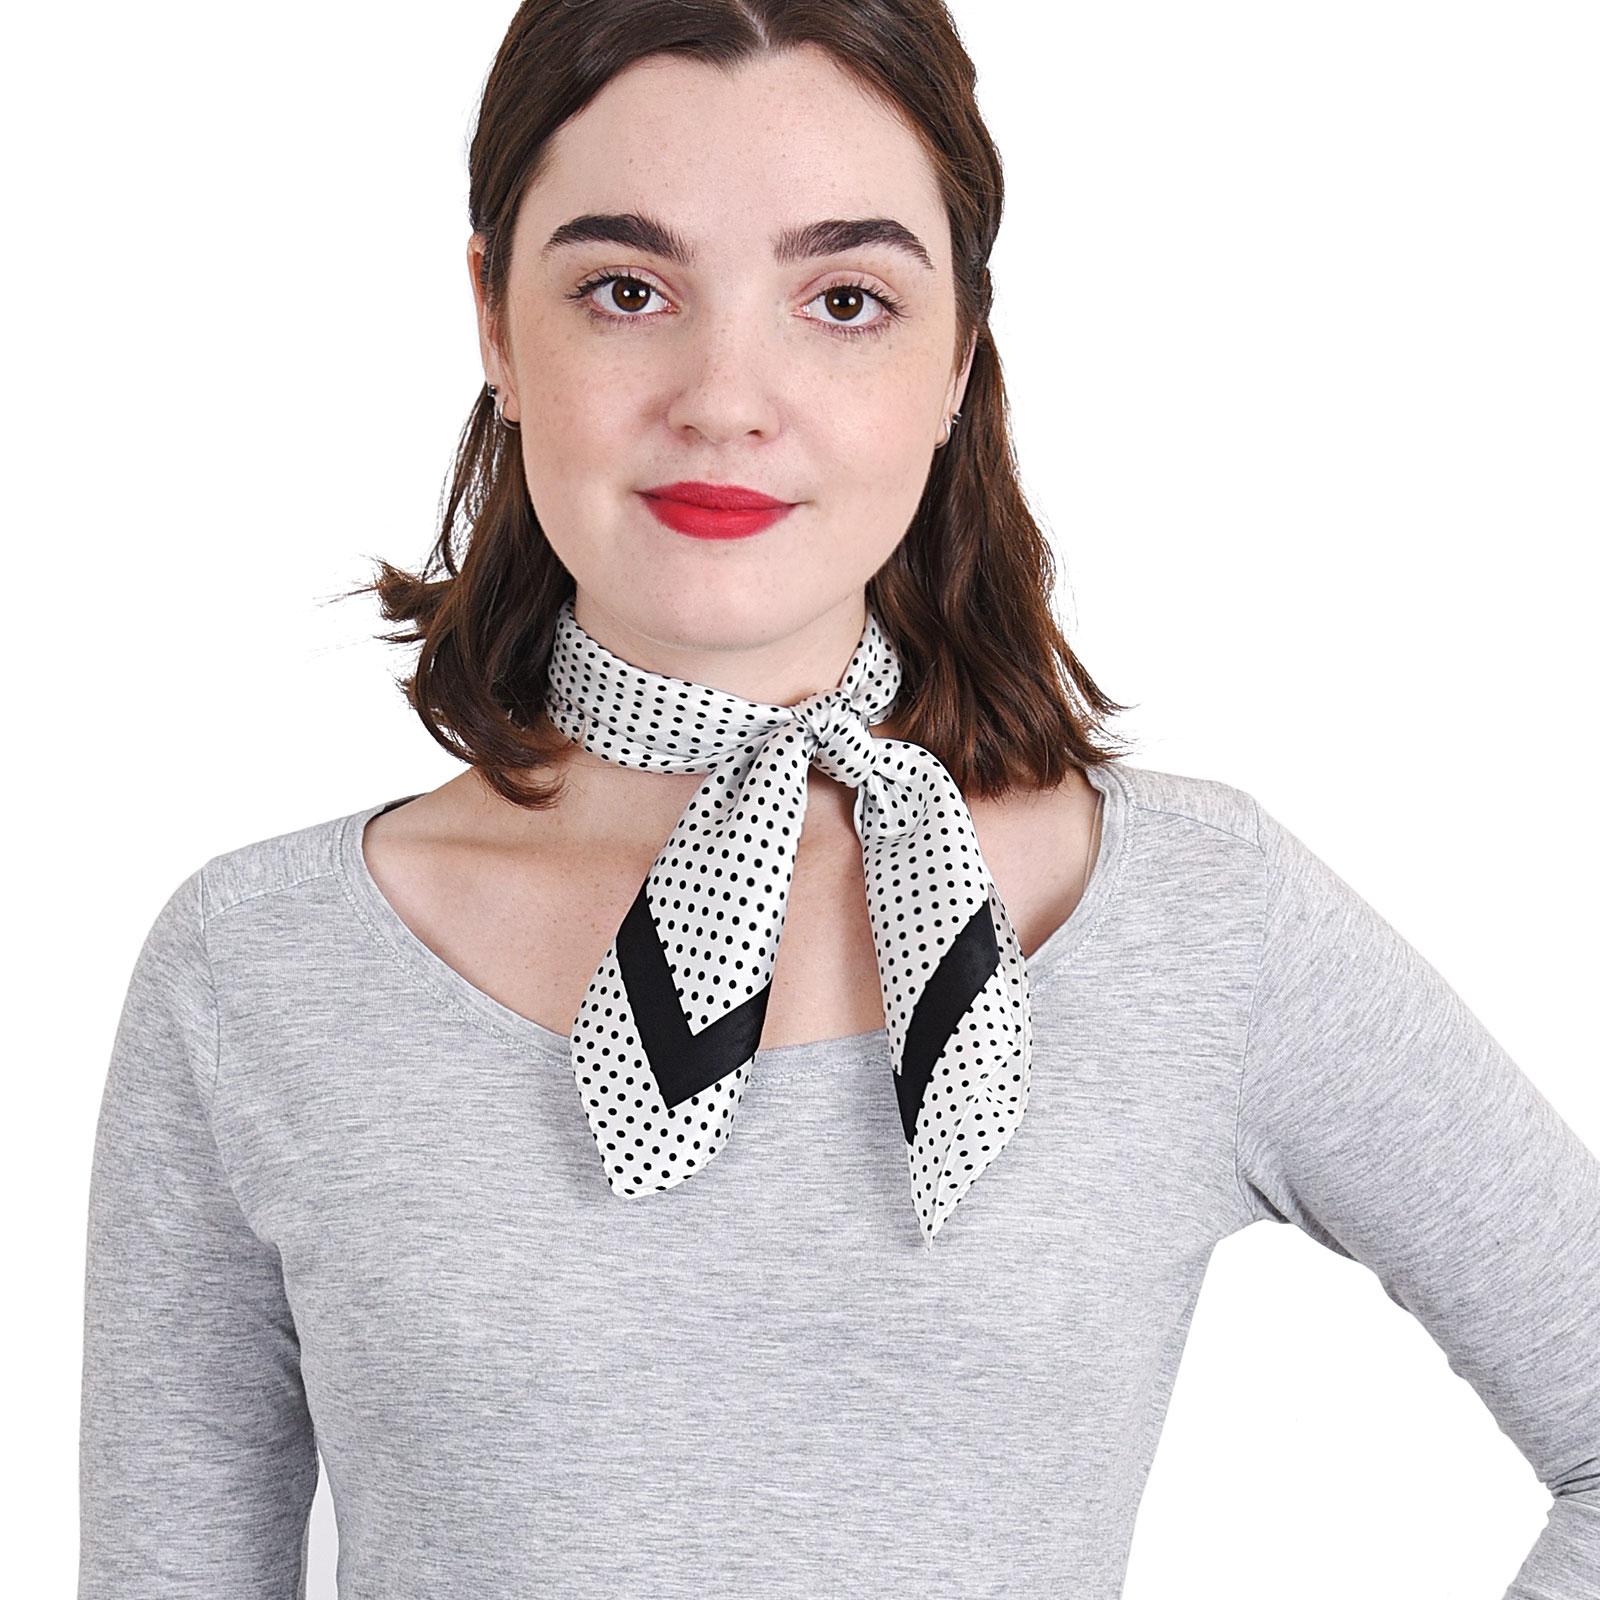 AT-04011-VF16-P-carre-soie-blanc-pois-noirs